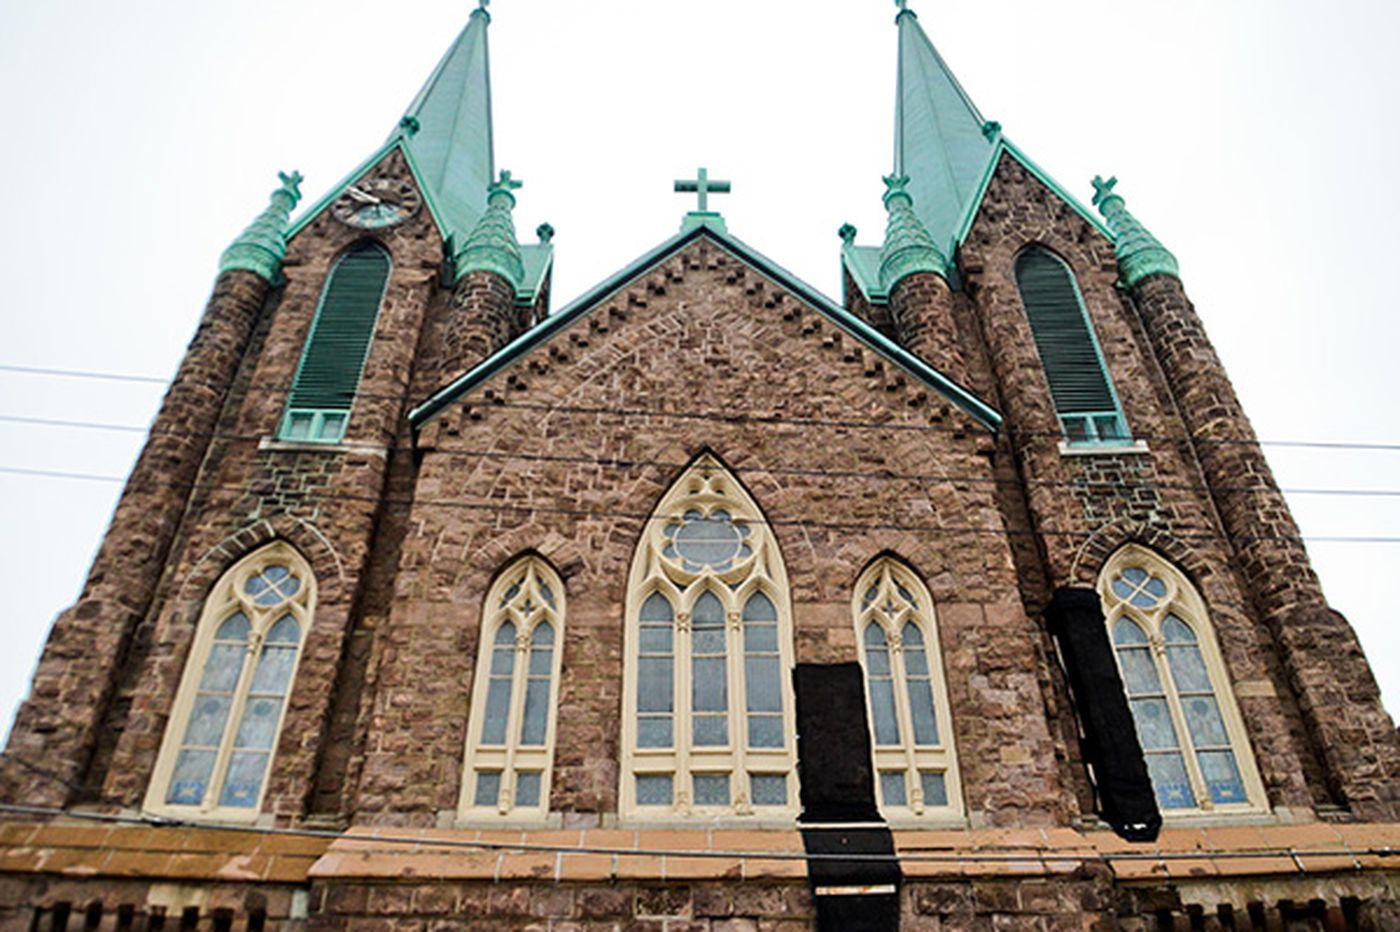 St. Laurentius, beloved Polish church in Fishtown, to be demolished